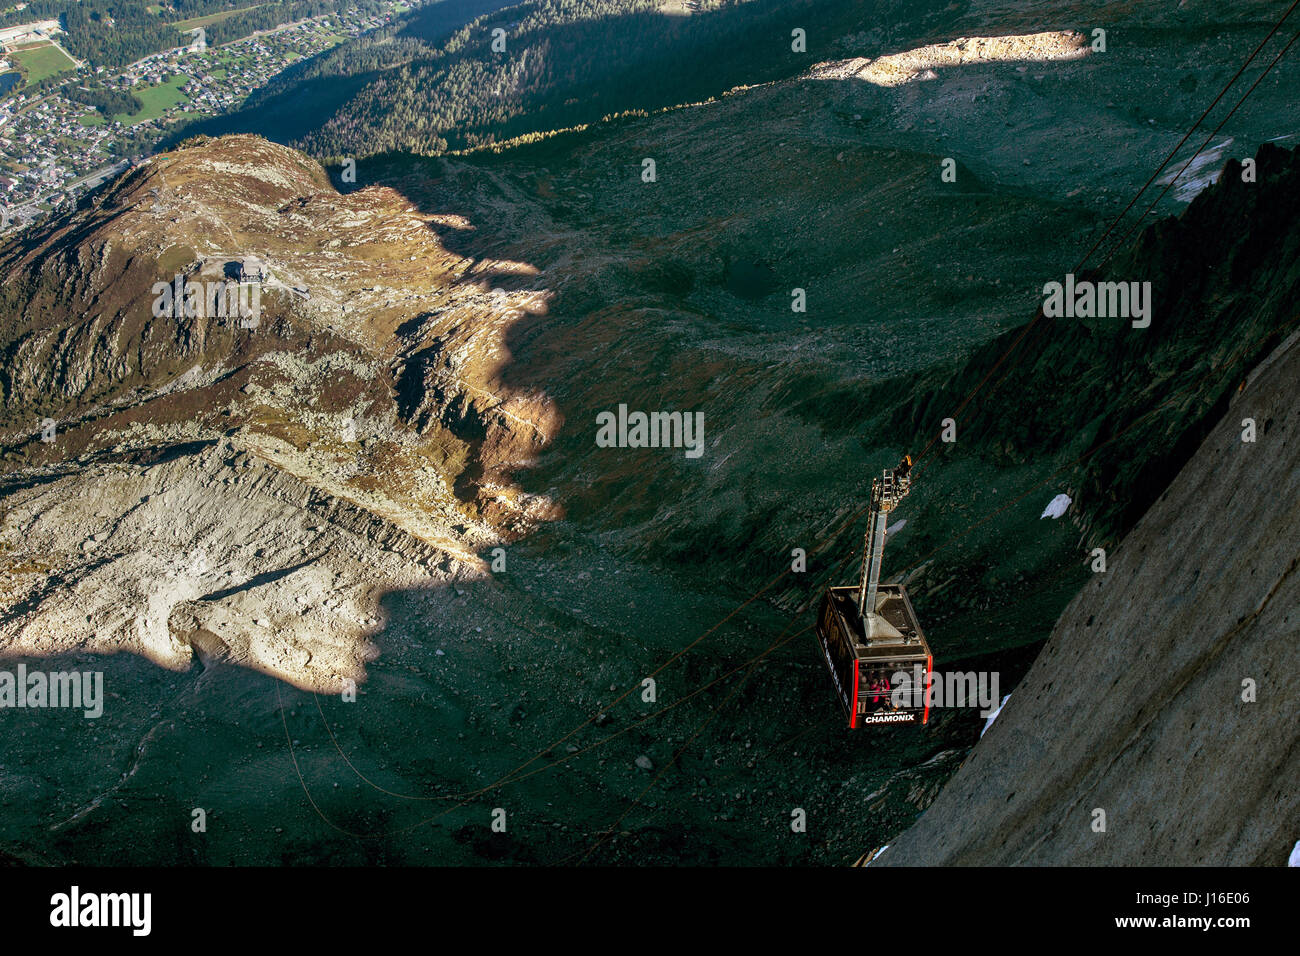 Famous Aiguille du Midi cable car between light and shadow - Stock Image